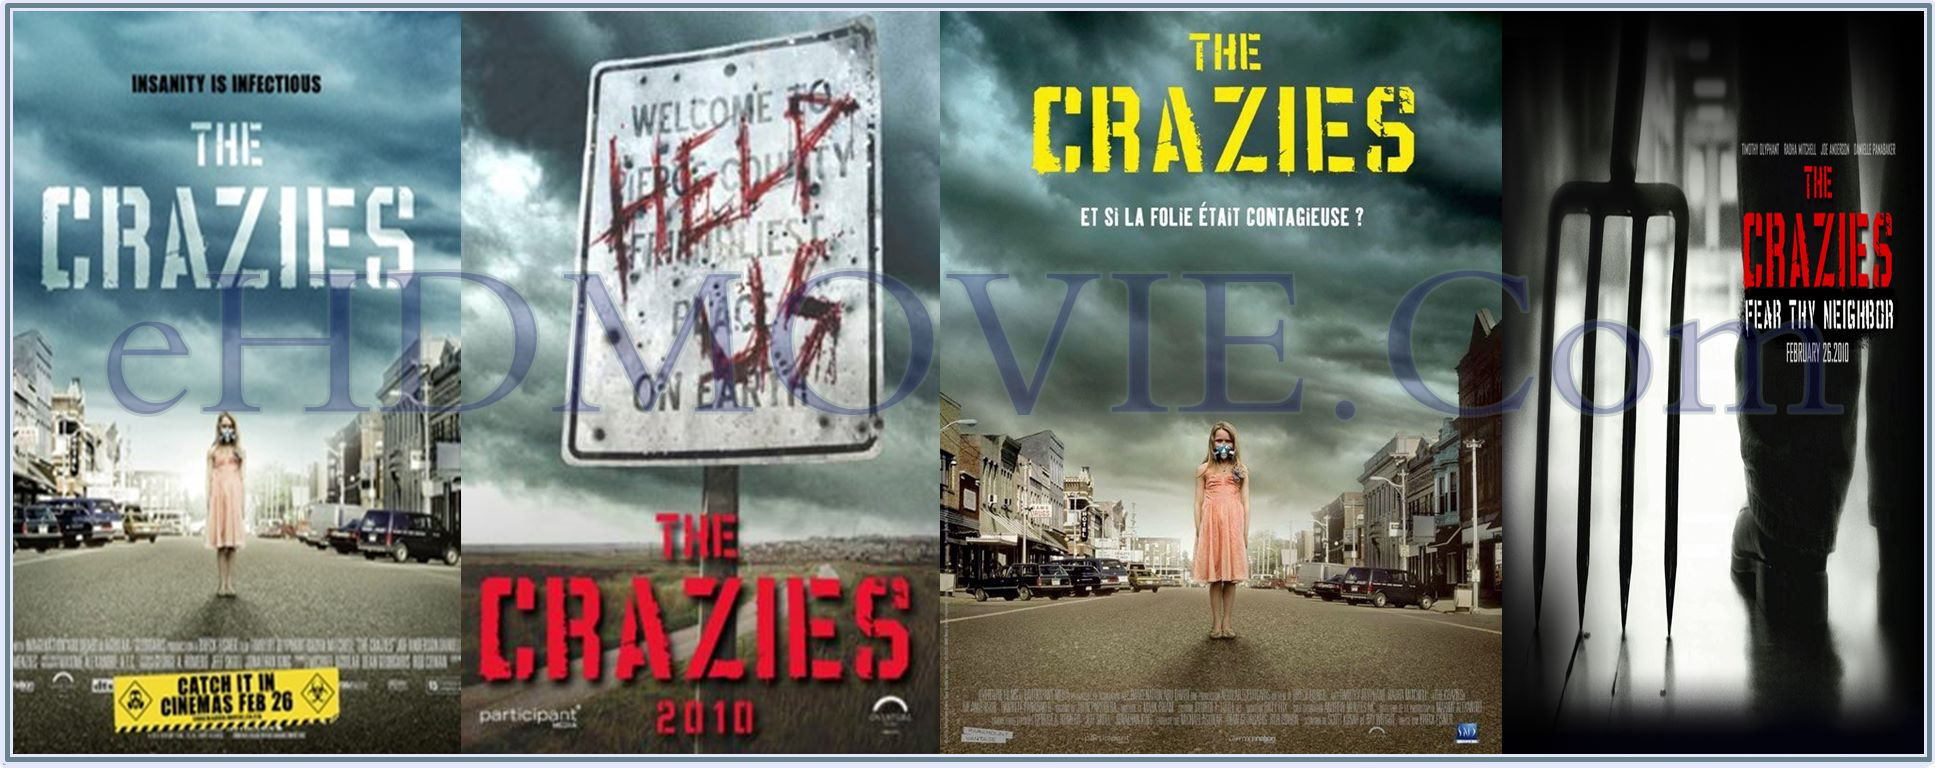 The Crazies 2010 Full Movie English 720p - 480p ORG BRRip 350MB - 700MB ESubs Free Download